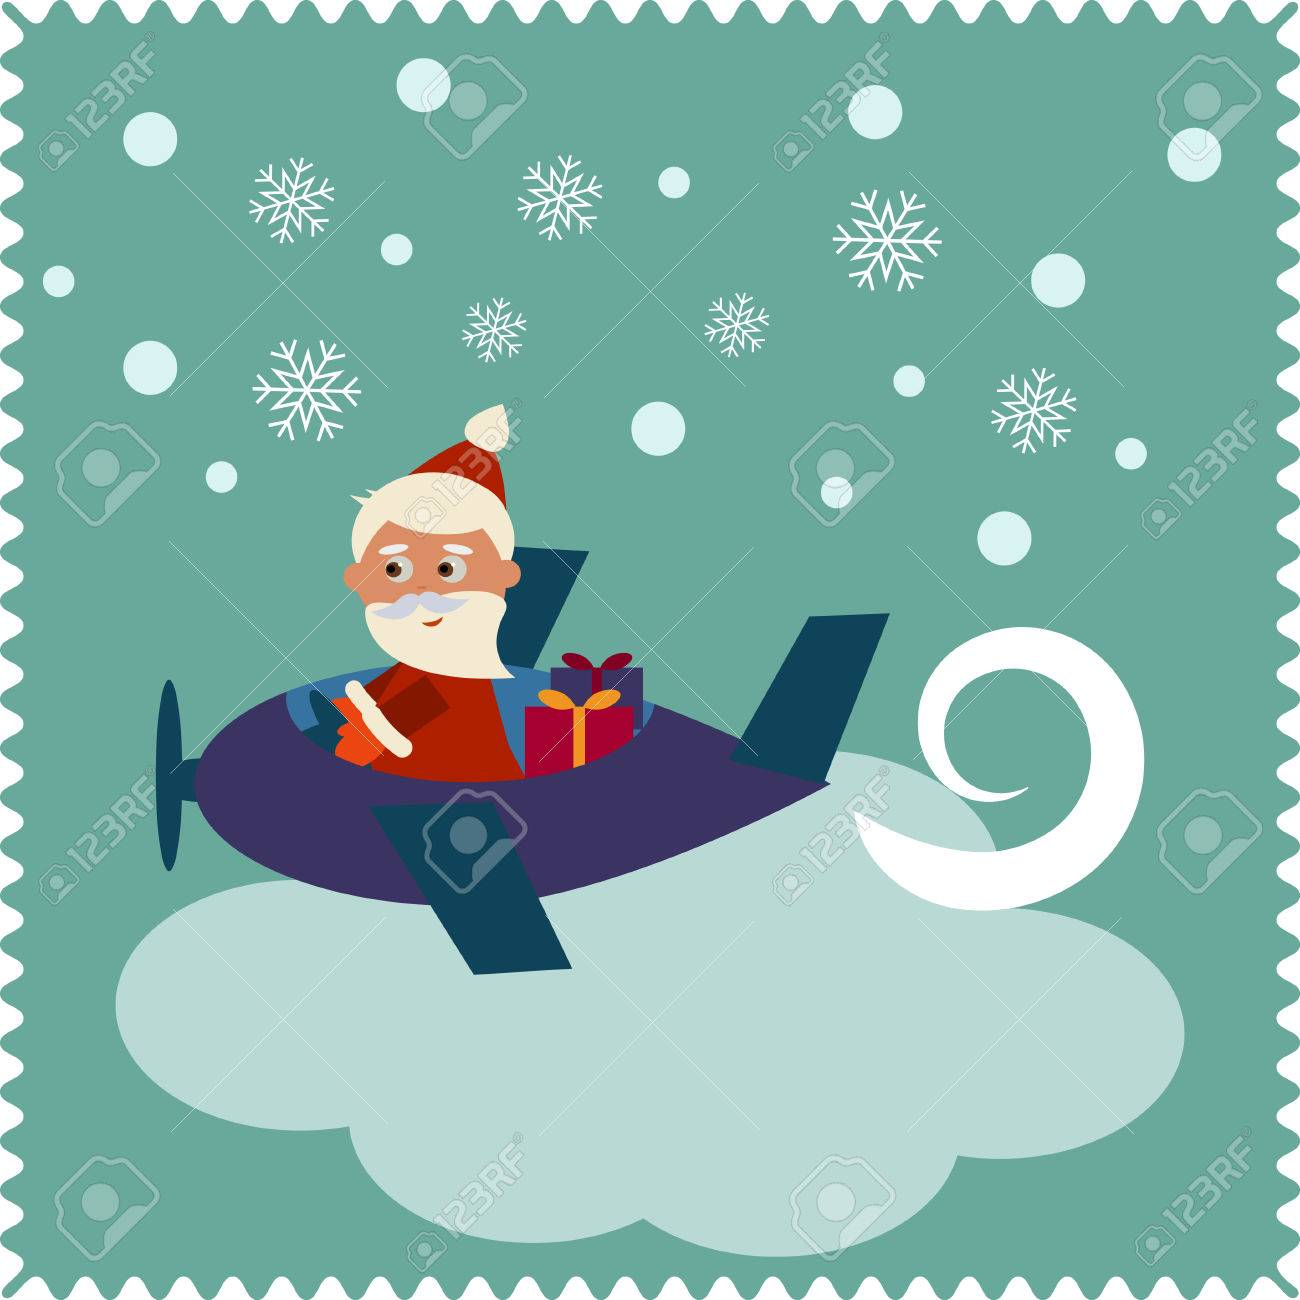 merry christmas greeting card with happy santa claus on airplane